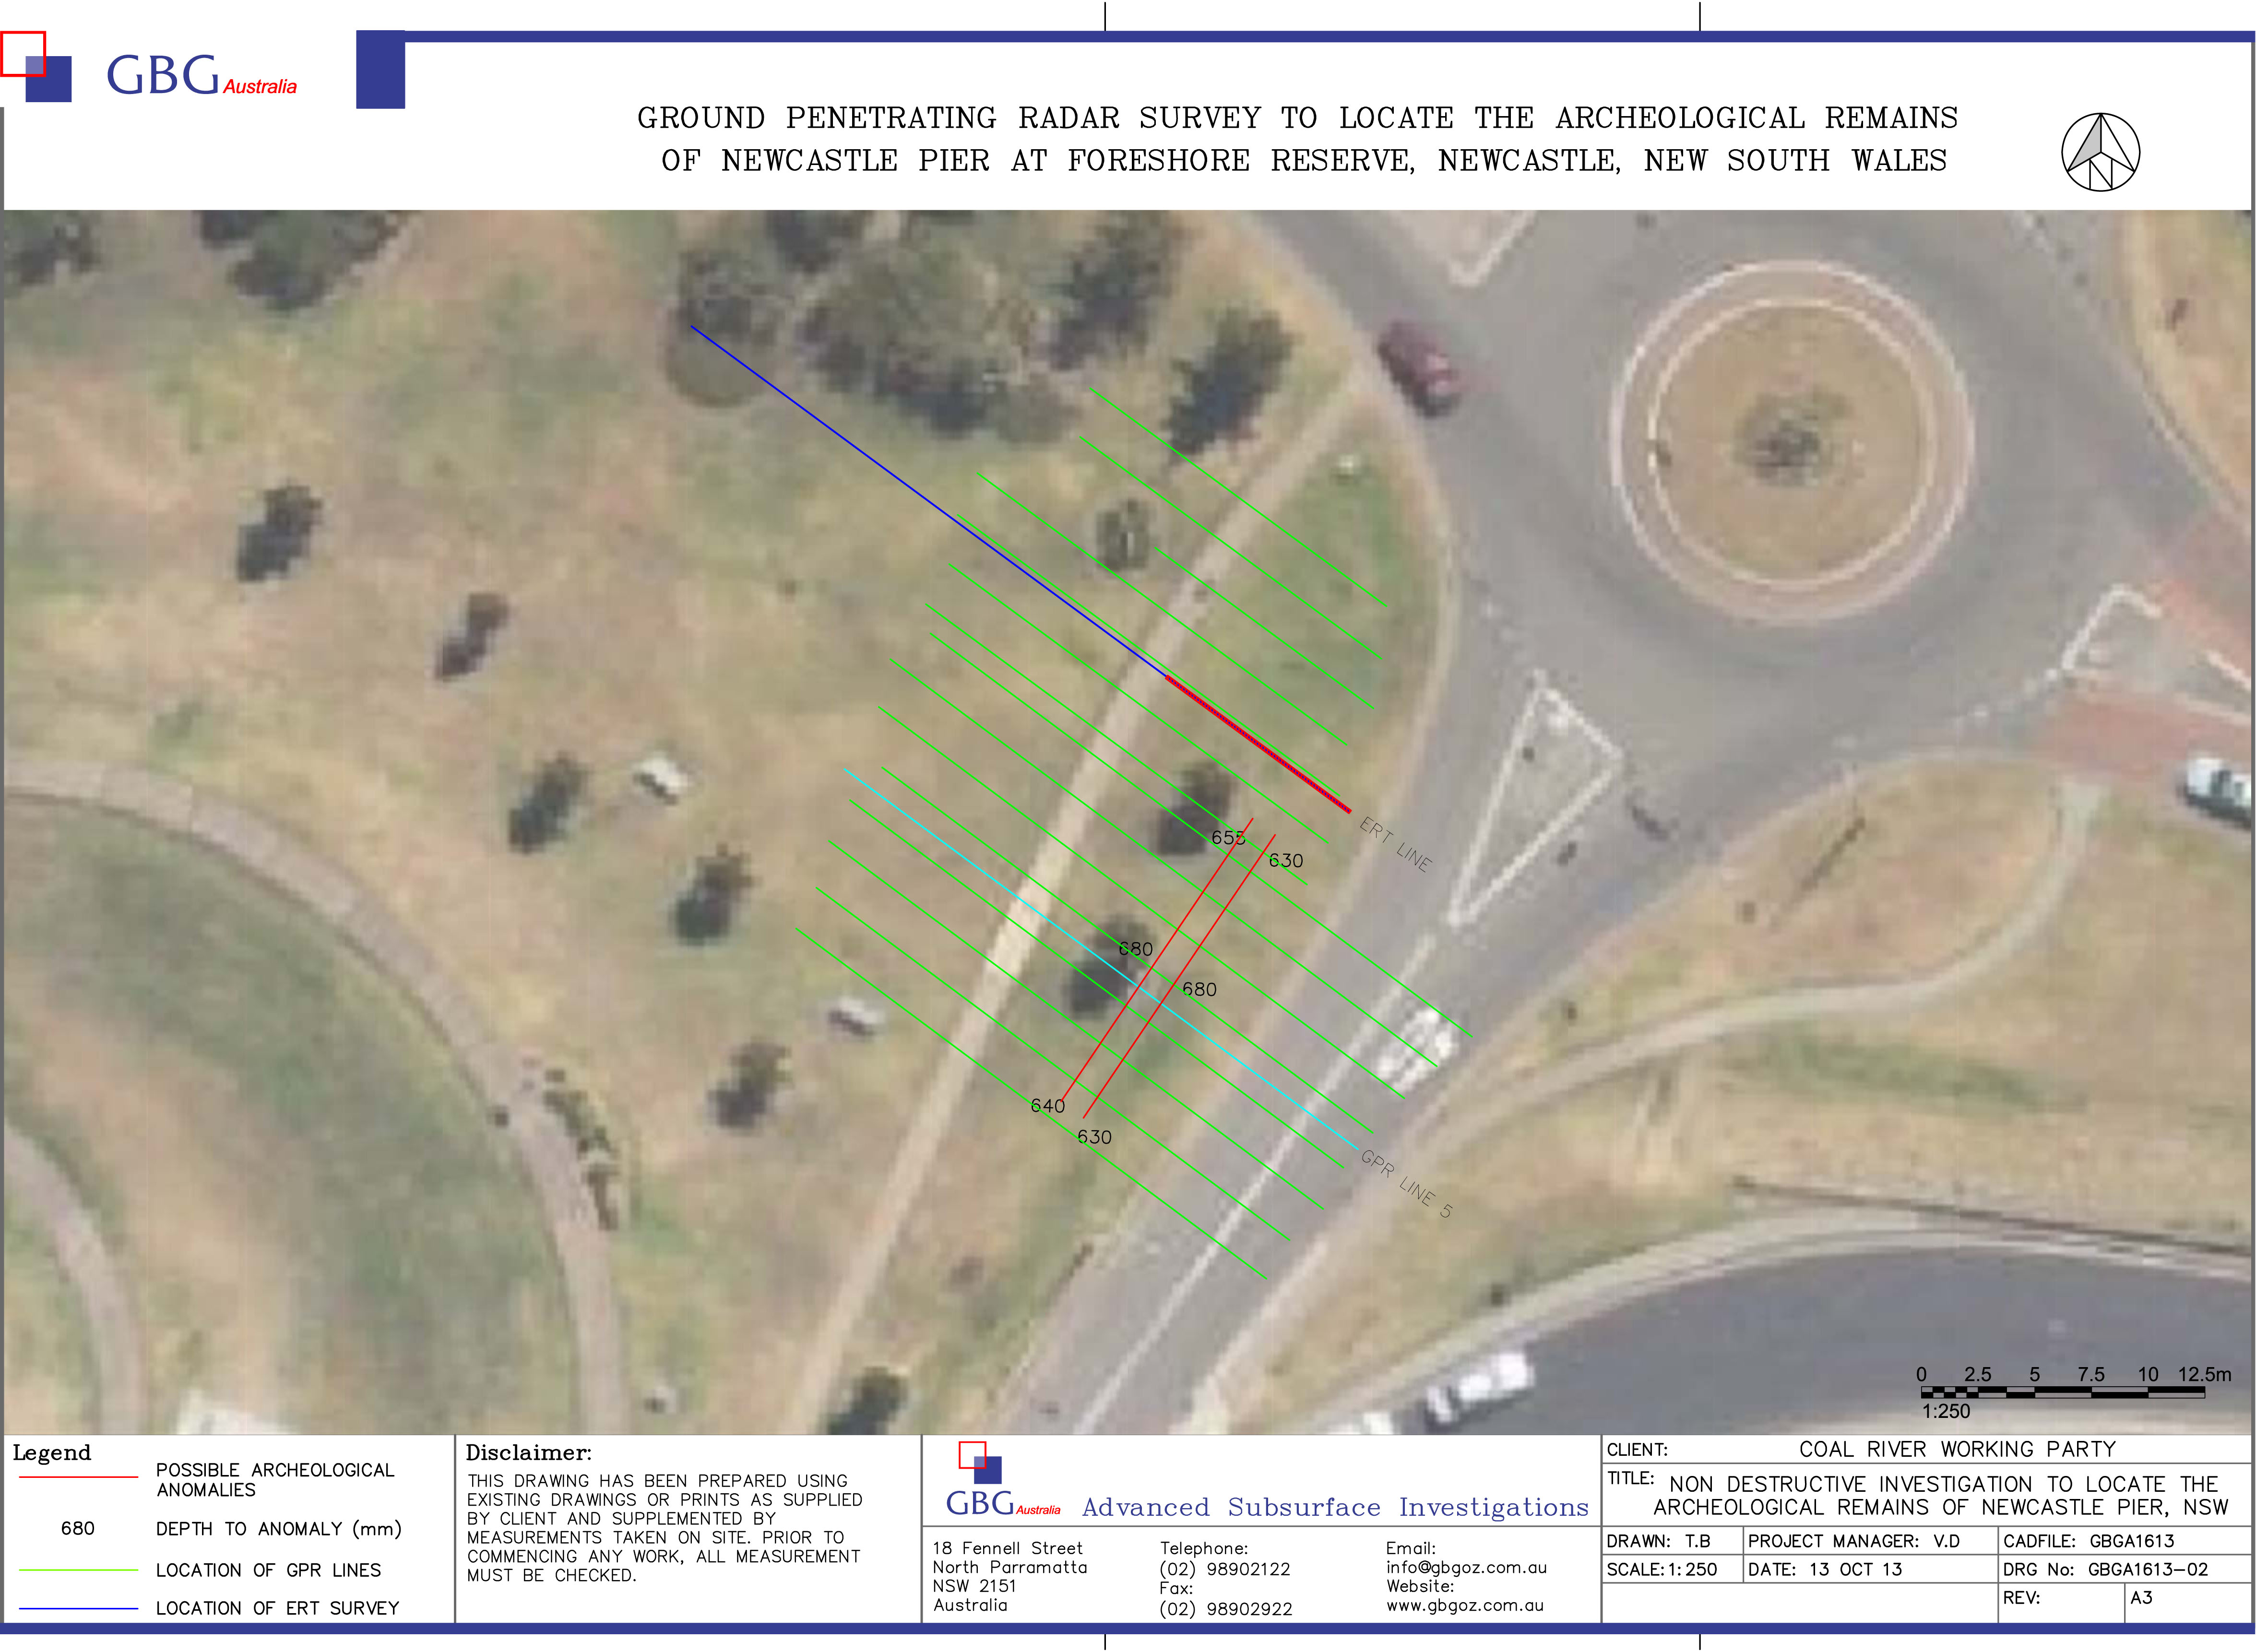 Aerial view of target site showing sweeps of GPR (green), and area of possible relic on the ERT line (coloured blue) Courtesy of GBG Australia